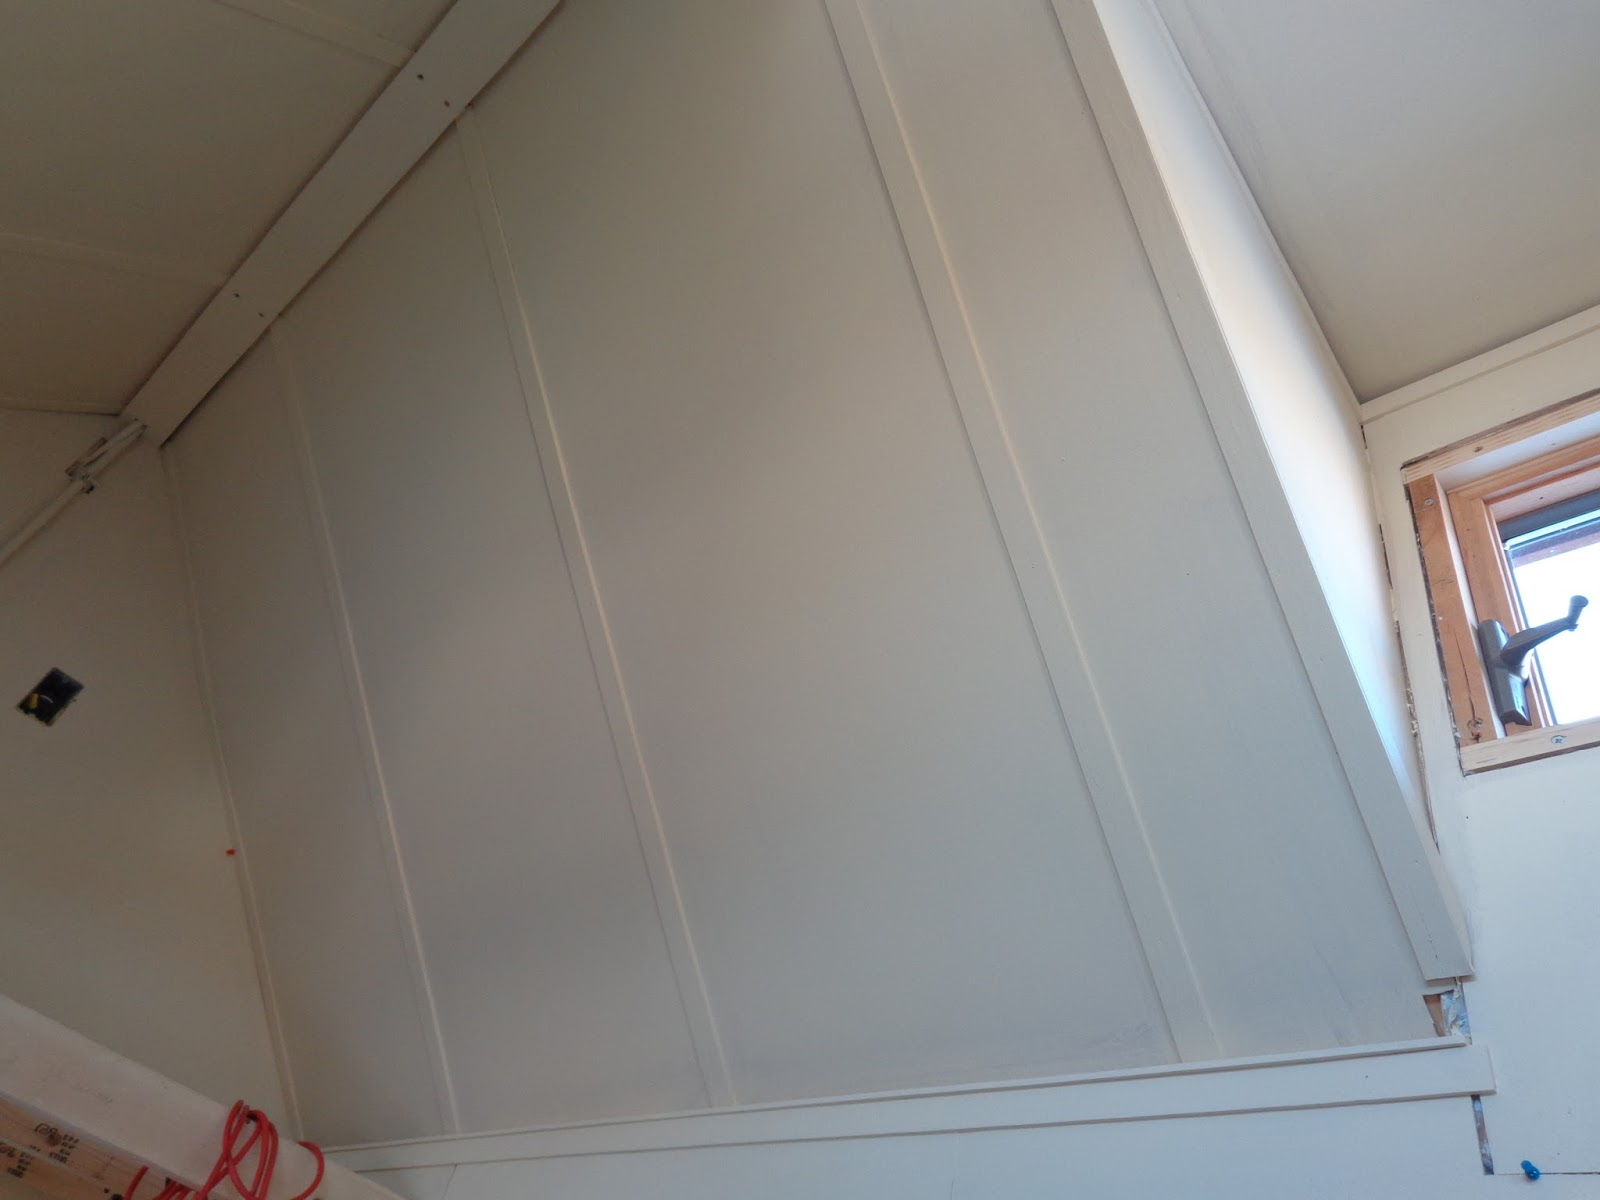 In A View Of The Port Side Cathedral Ceiling More Battens May Be Seen Under Coat Primer Also Kyles Nice 1 X 3 Peak Trim Is Visible Covering